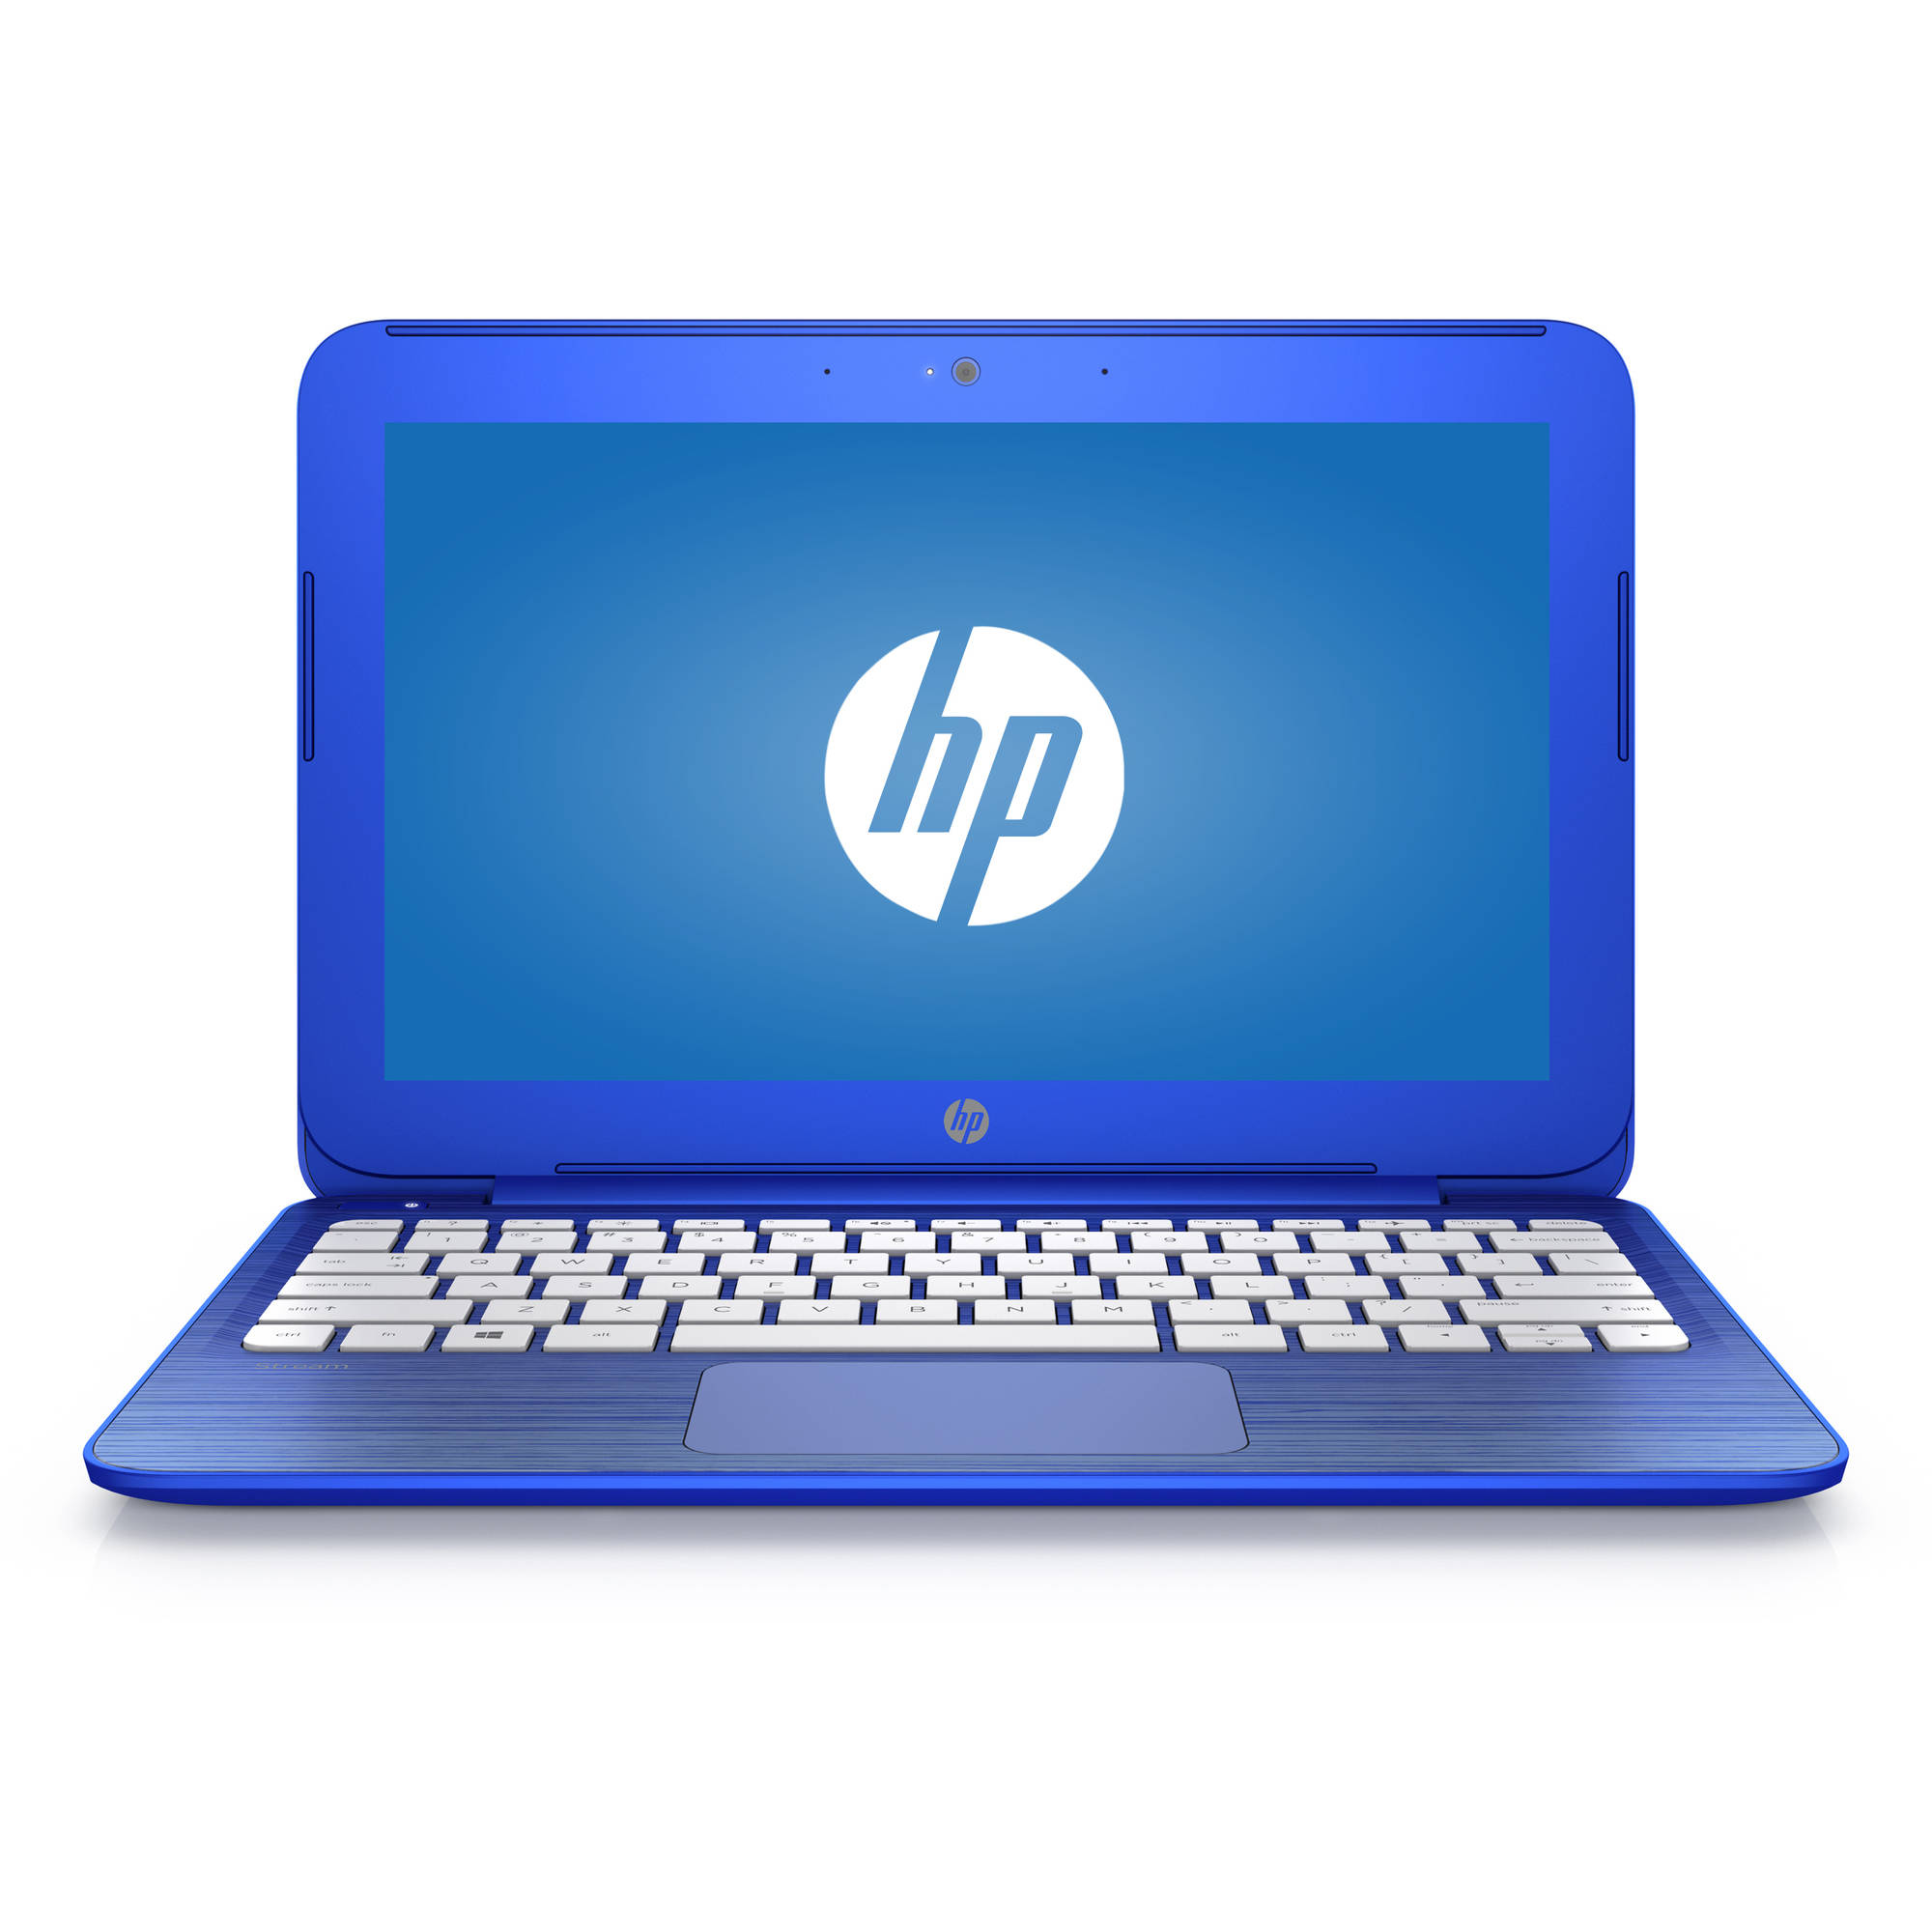 """HP 11"""" Stream Laptop PC with Intel Celeron N3050 Dual-Core Processor, 2GB Memory, 32GB Hard Drive and Windows 10 Home, Microsoft Office 365 Personal (1yr subscription)"""